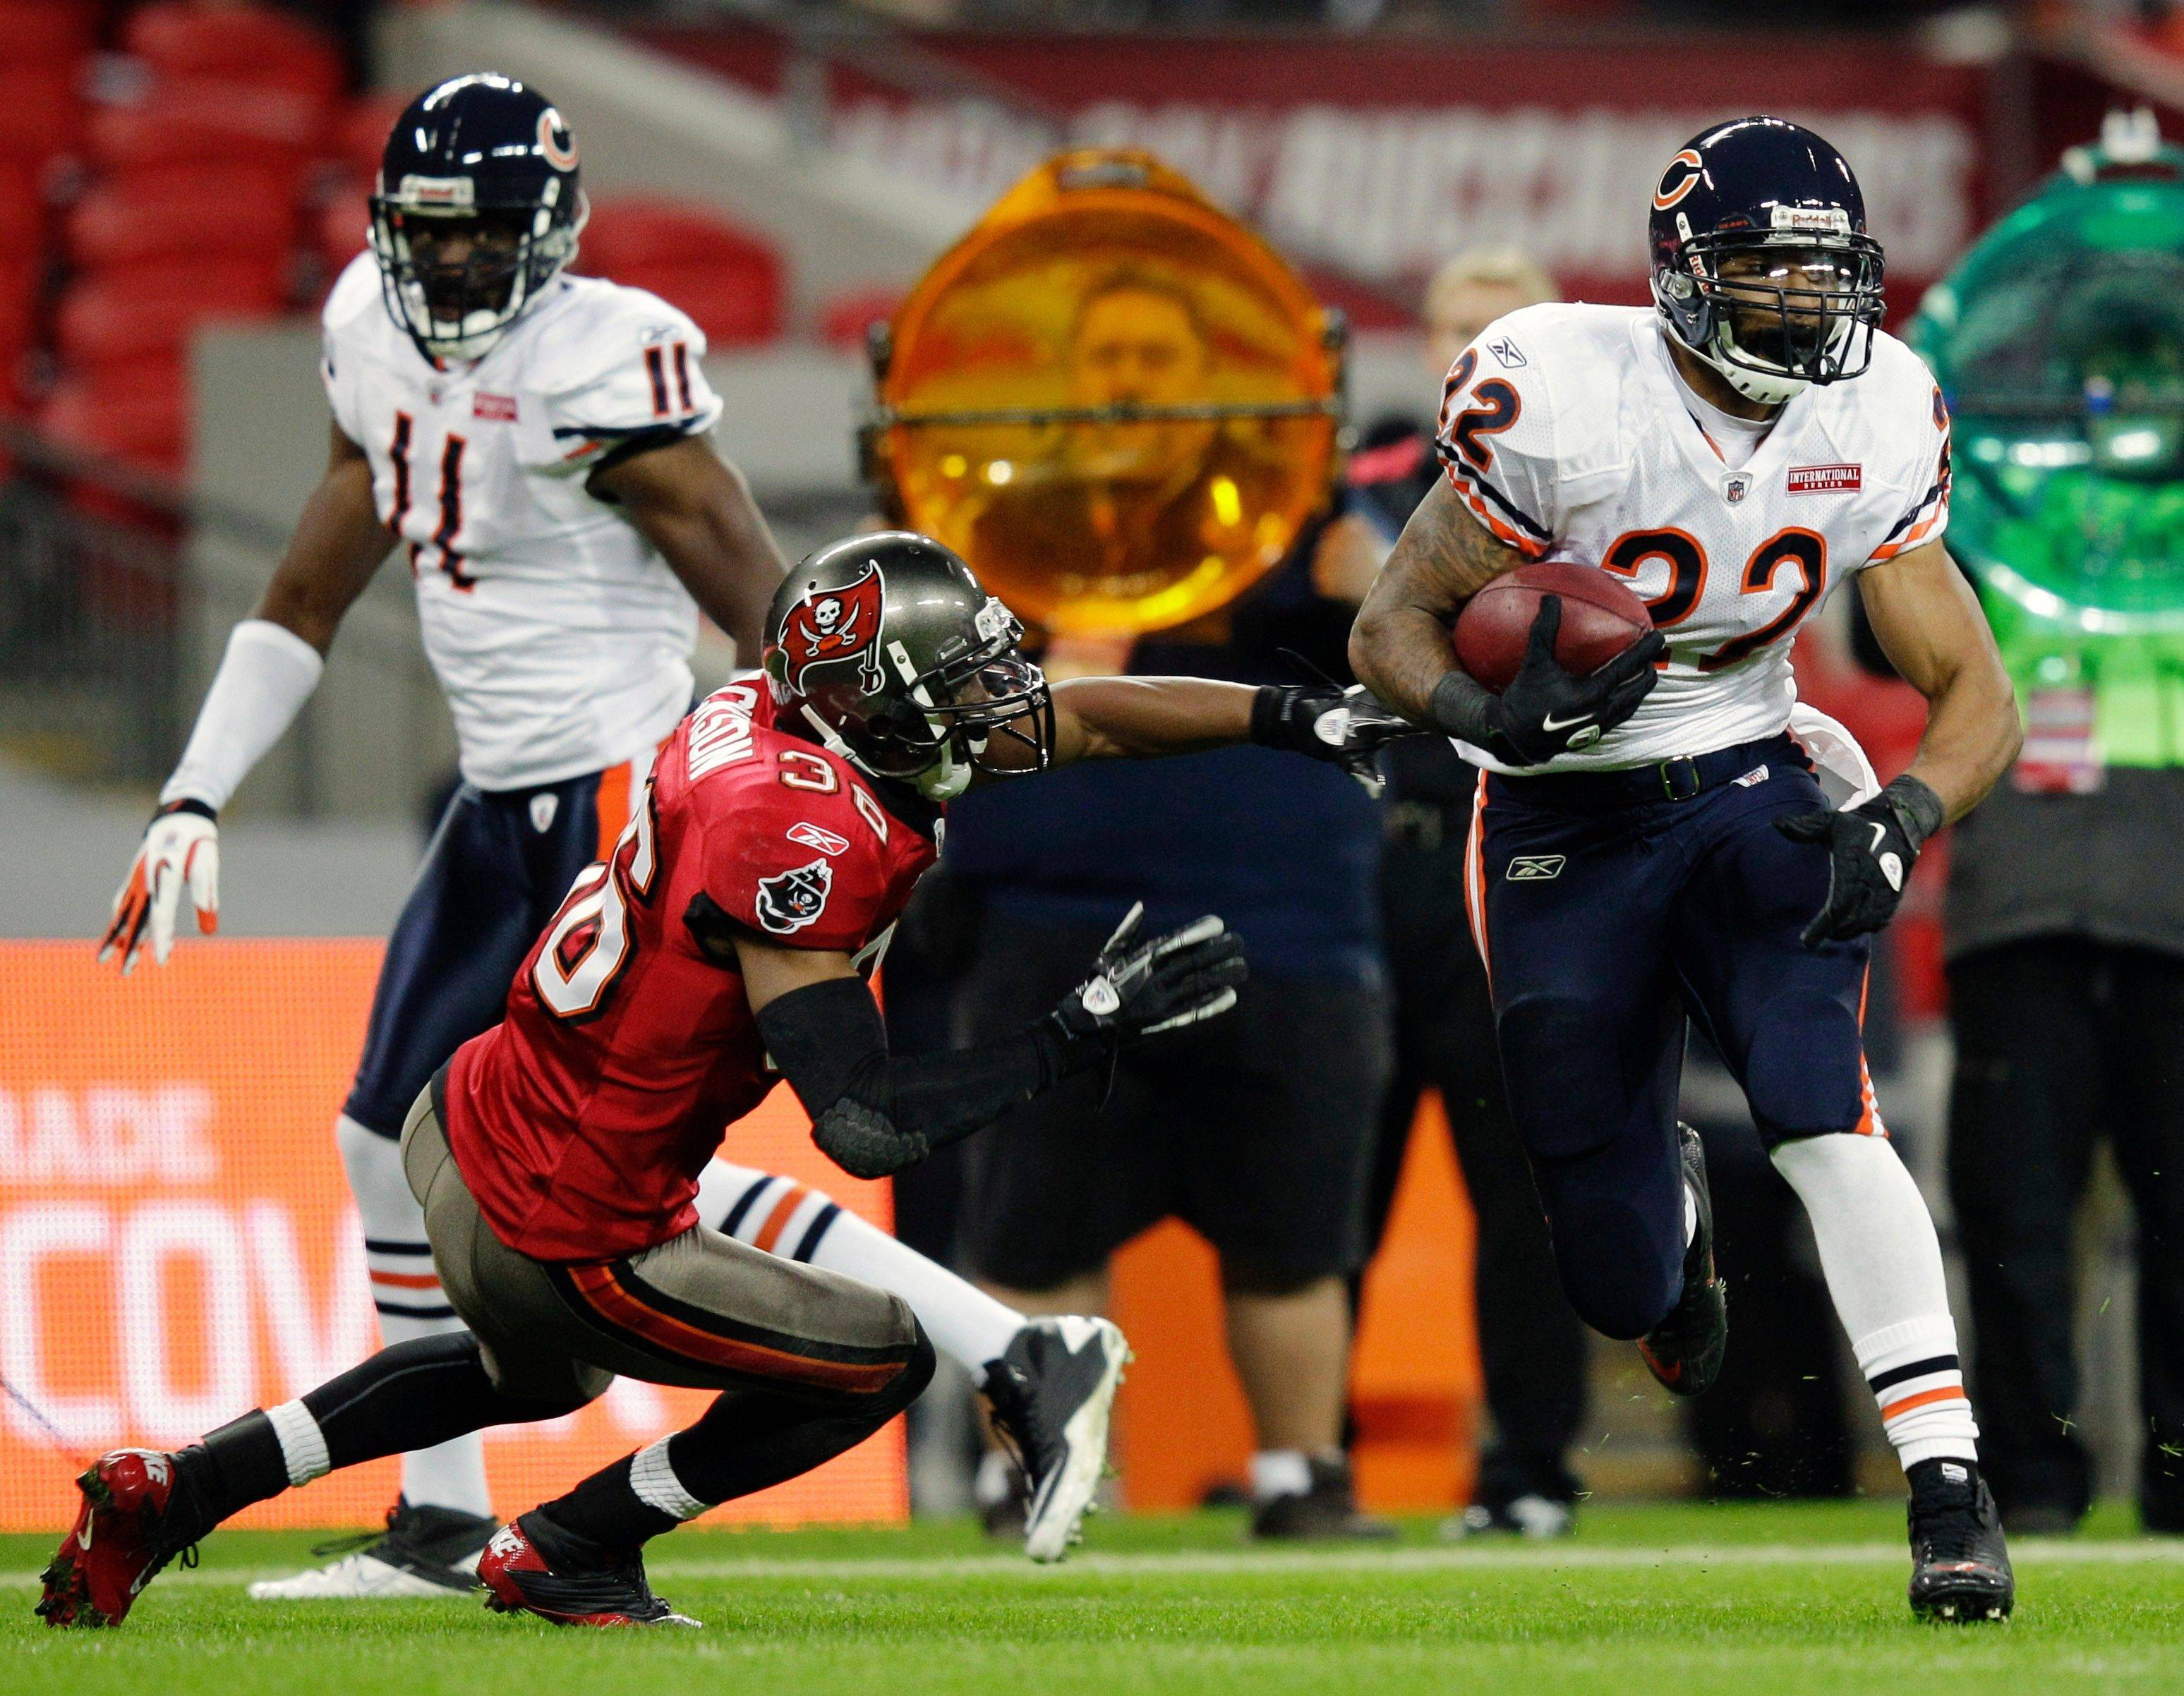 Tampa Bay Buccaneers defensive back Tanard Jackson cannot stop Chicago Bears running back Matt Forte on a run for a 32-yard touchdown during the first half.